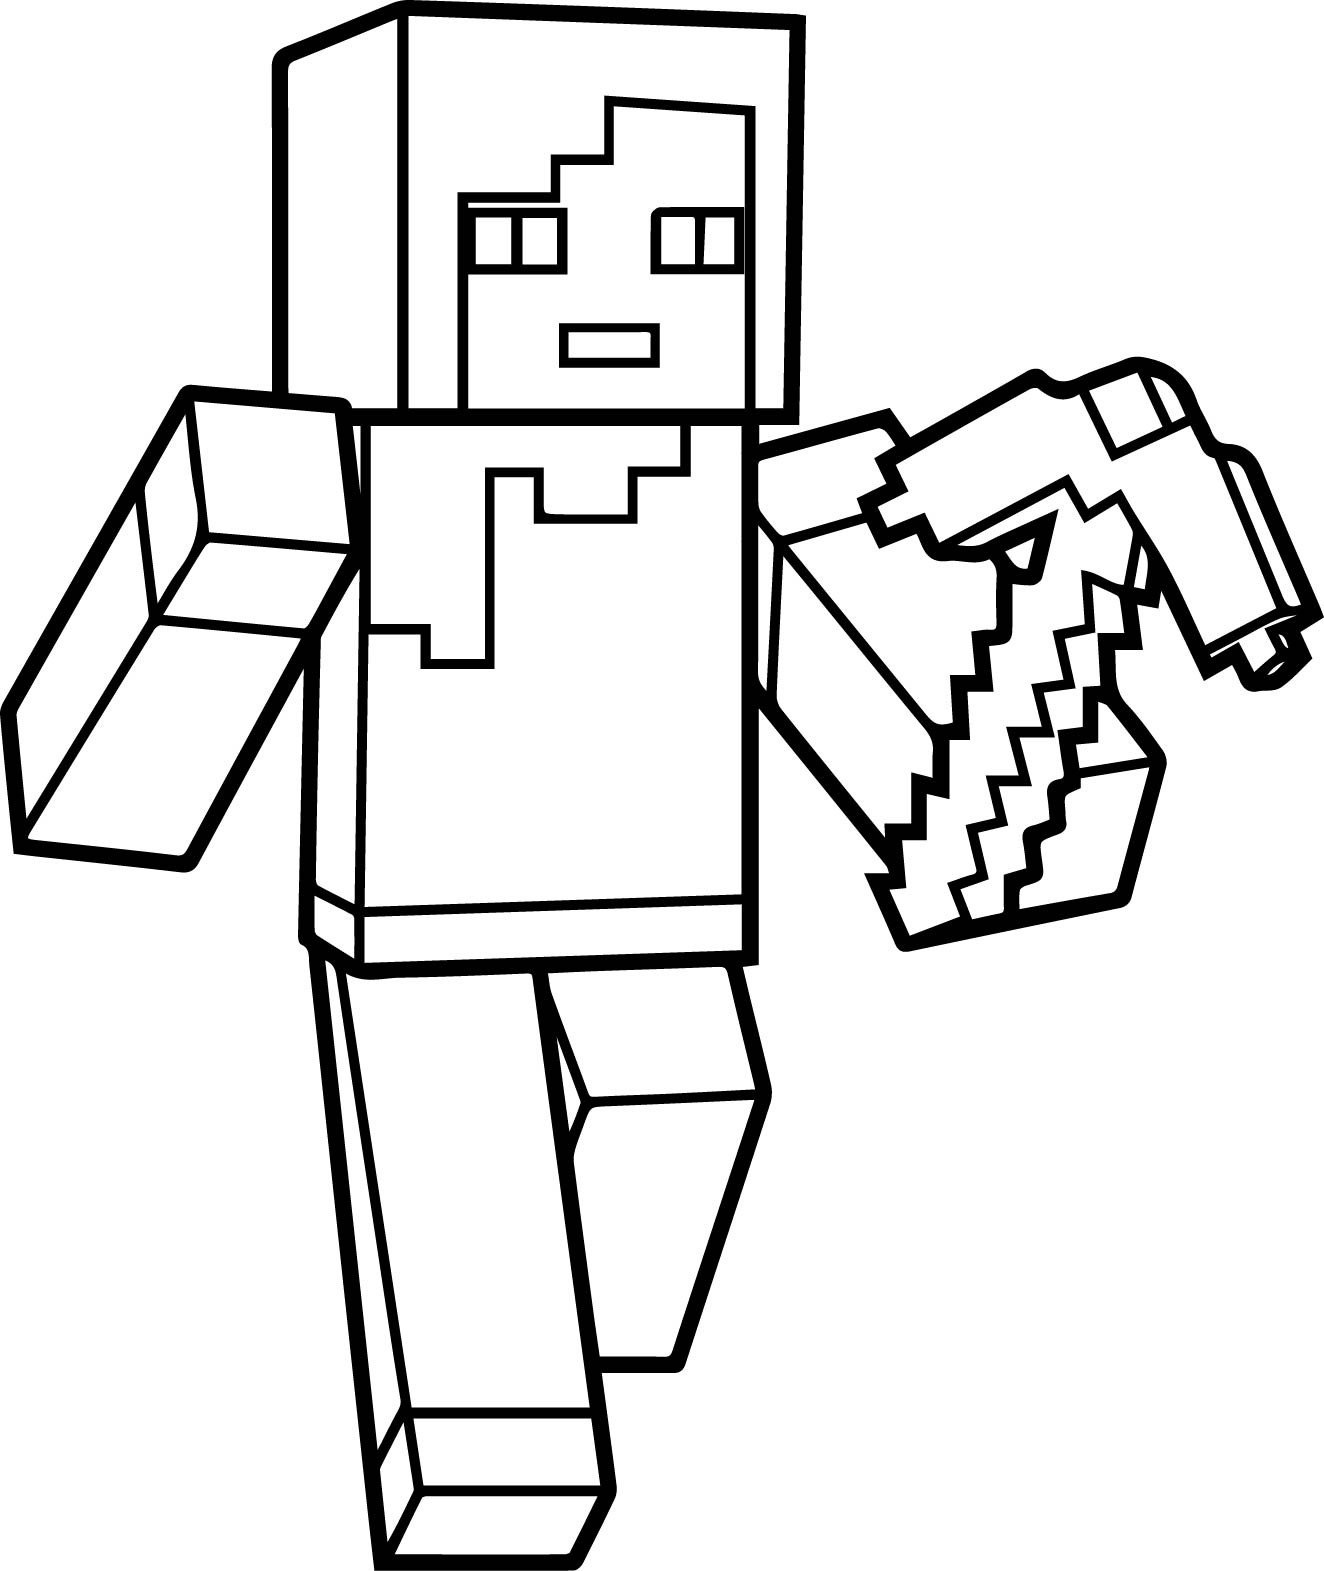 Minecraft Steve Coloring Pages  Minecraft Coloring Pages Best Coloring Pages For Kids